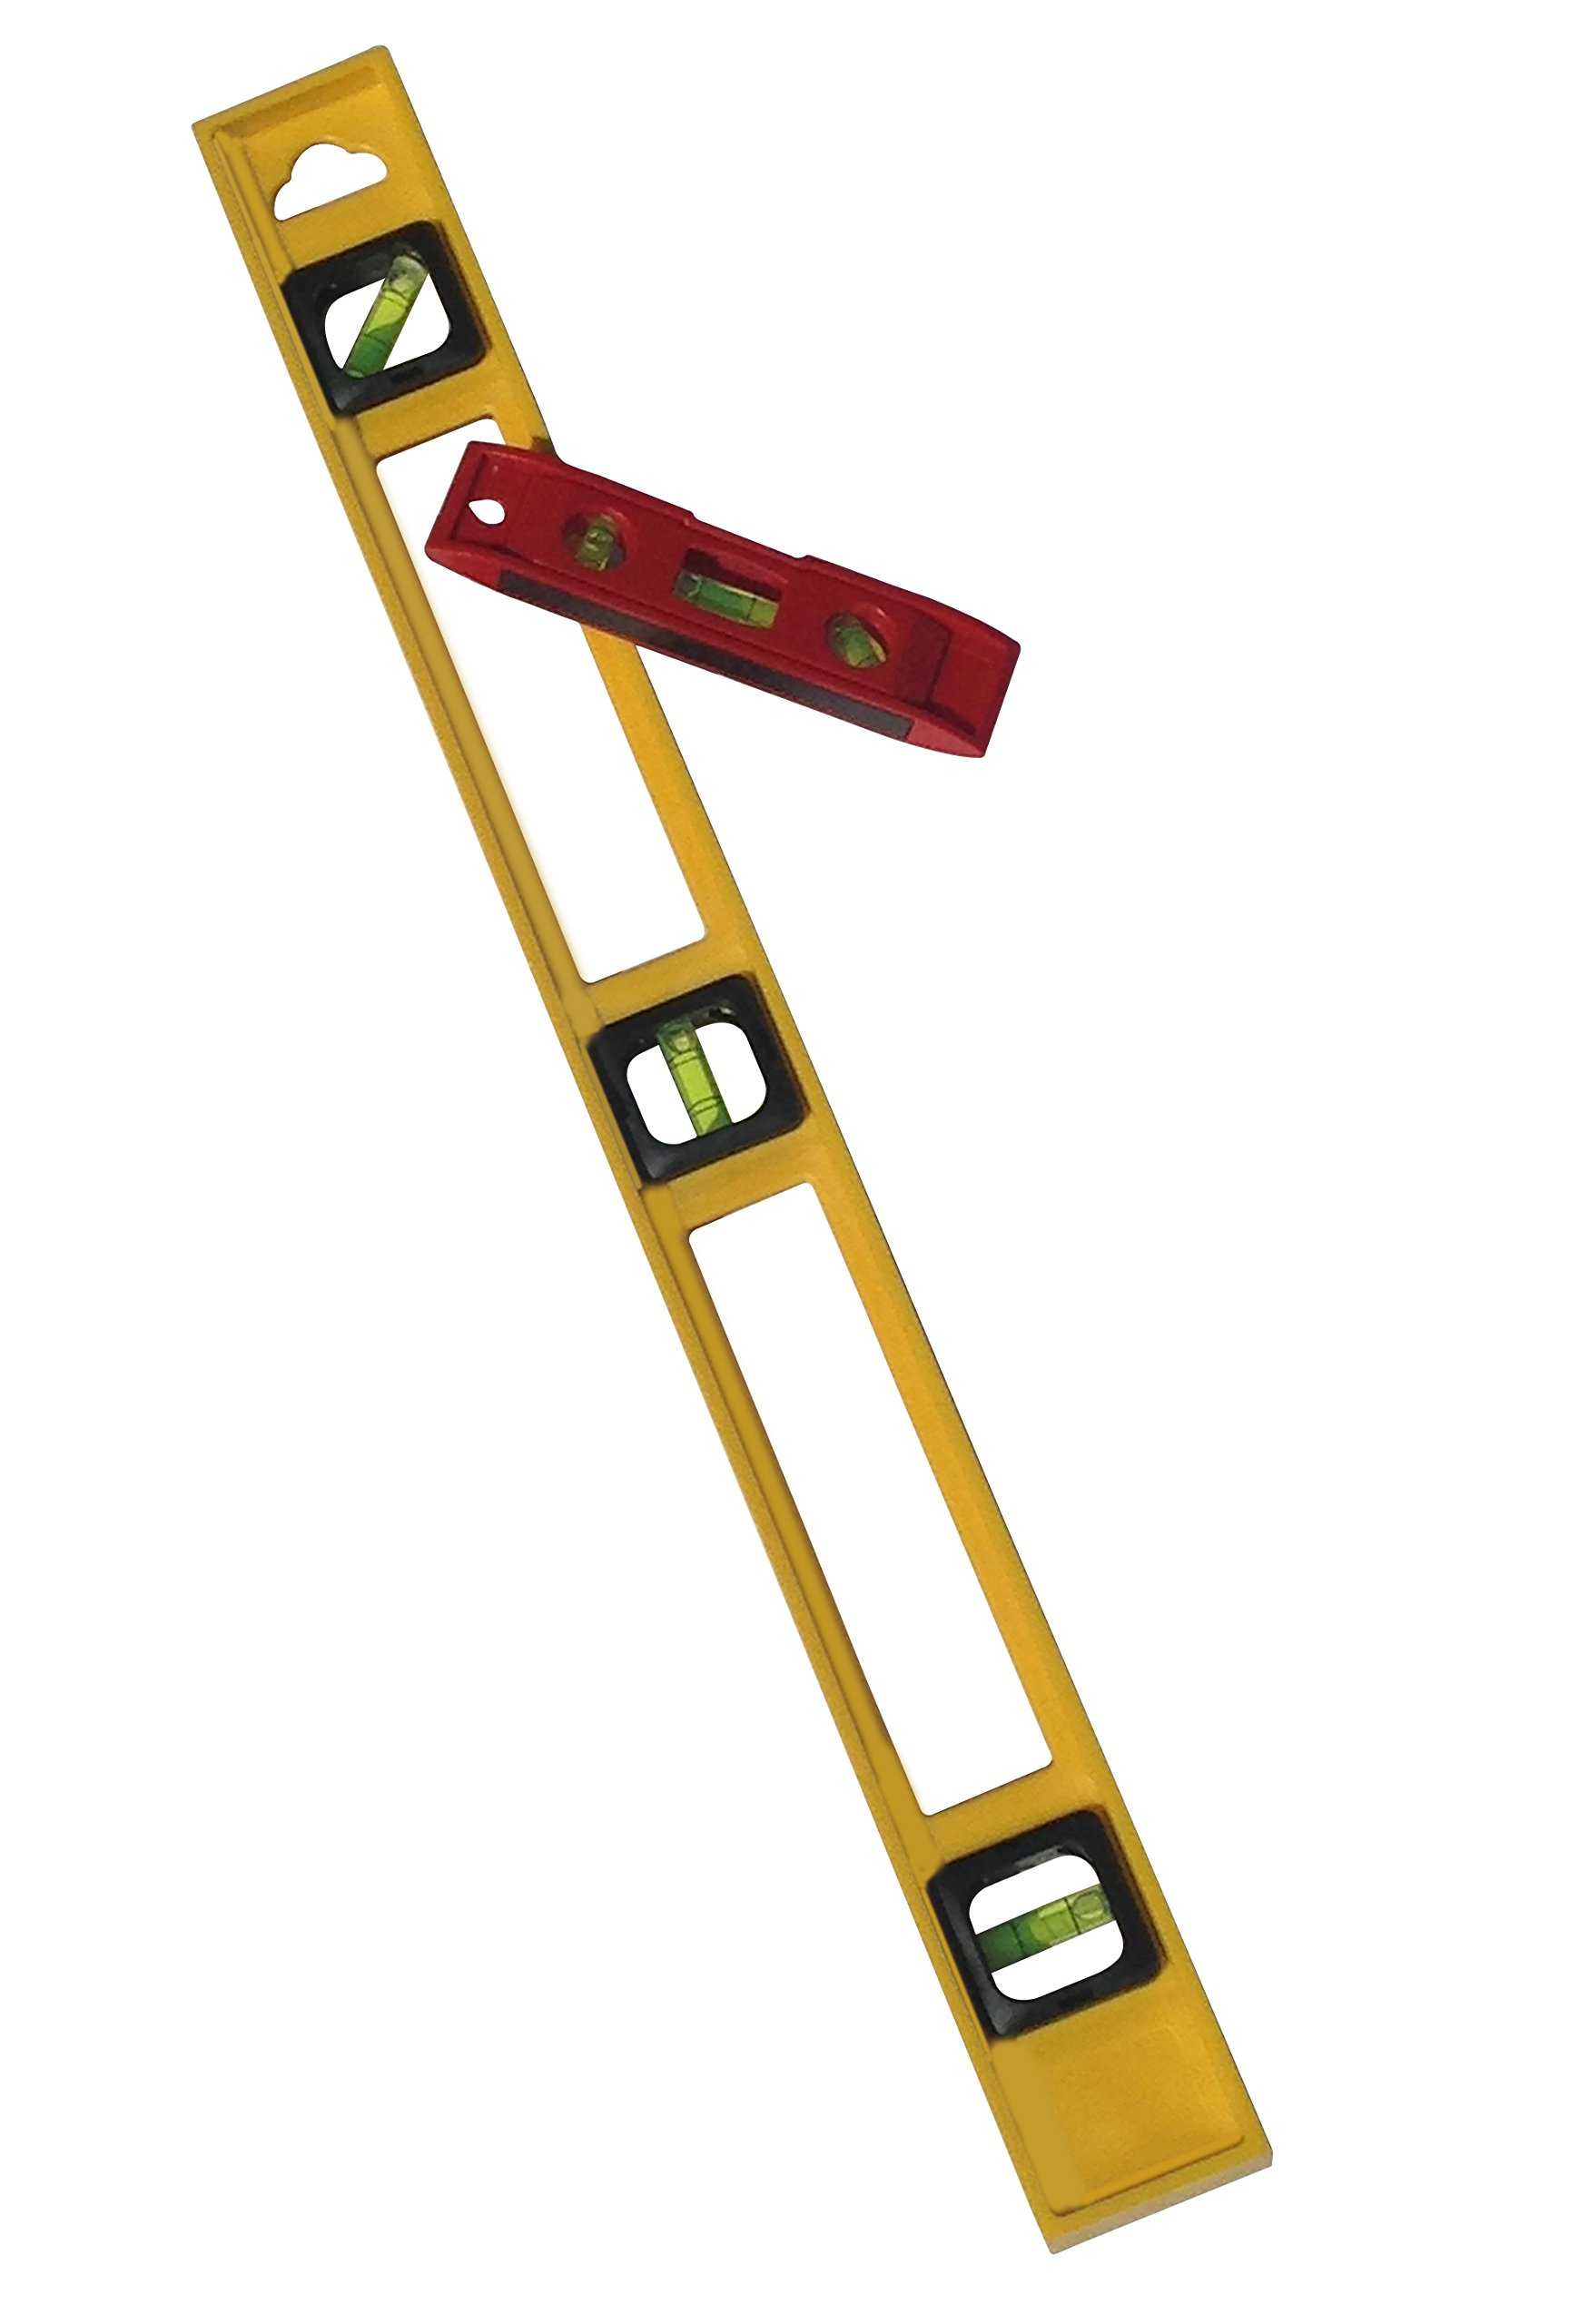 24 Inch and 6 Inch 3 Bubble Torpedo Level Pack Home or Jobsite Approved by Straight and Narrow (Image #2)